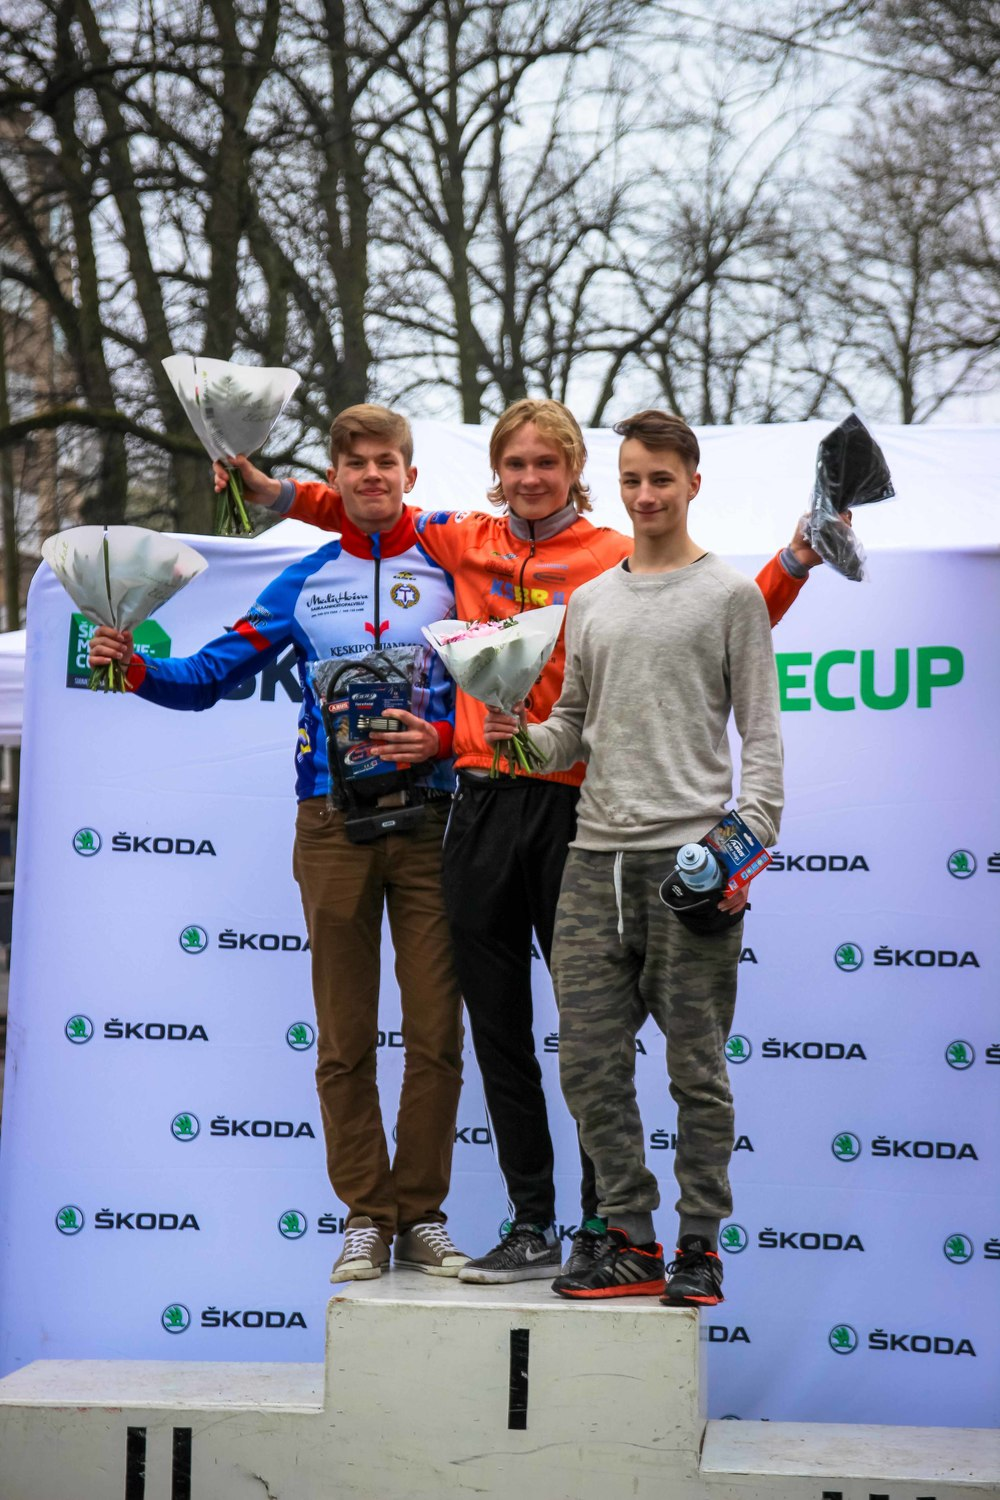 M-16 podium from left: Lahti, Juntunen, Koistinen